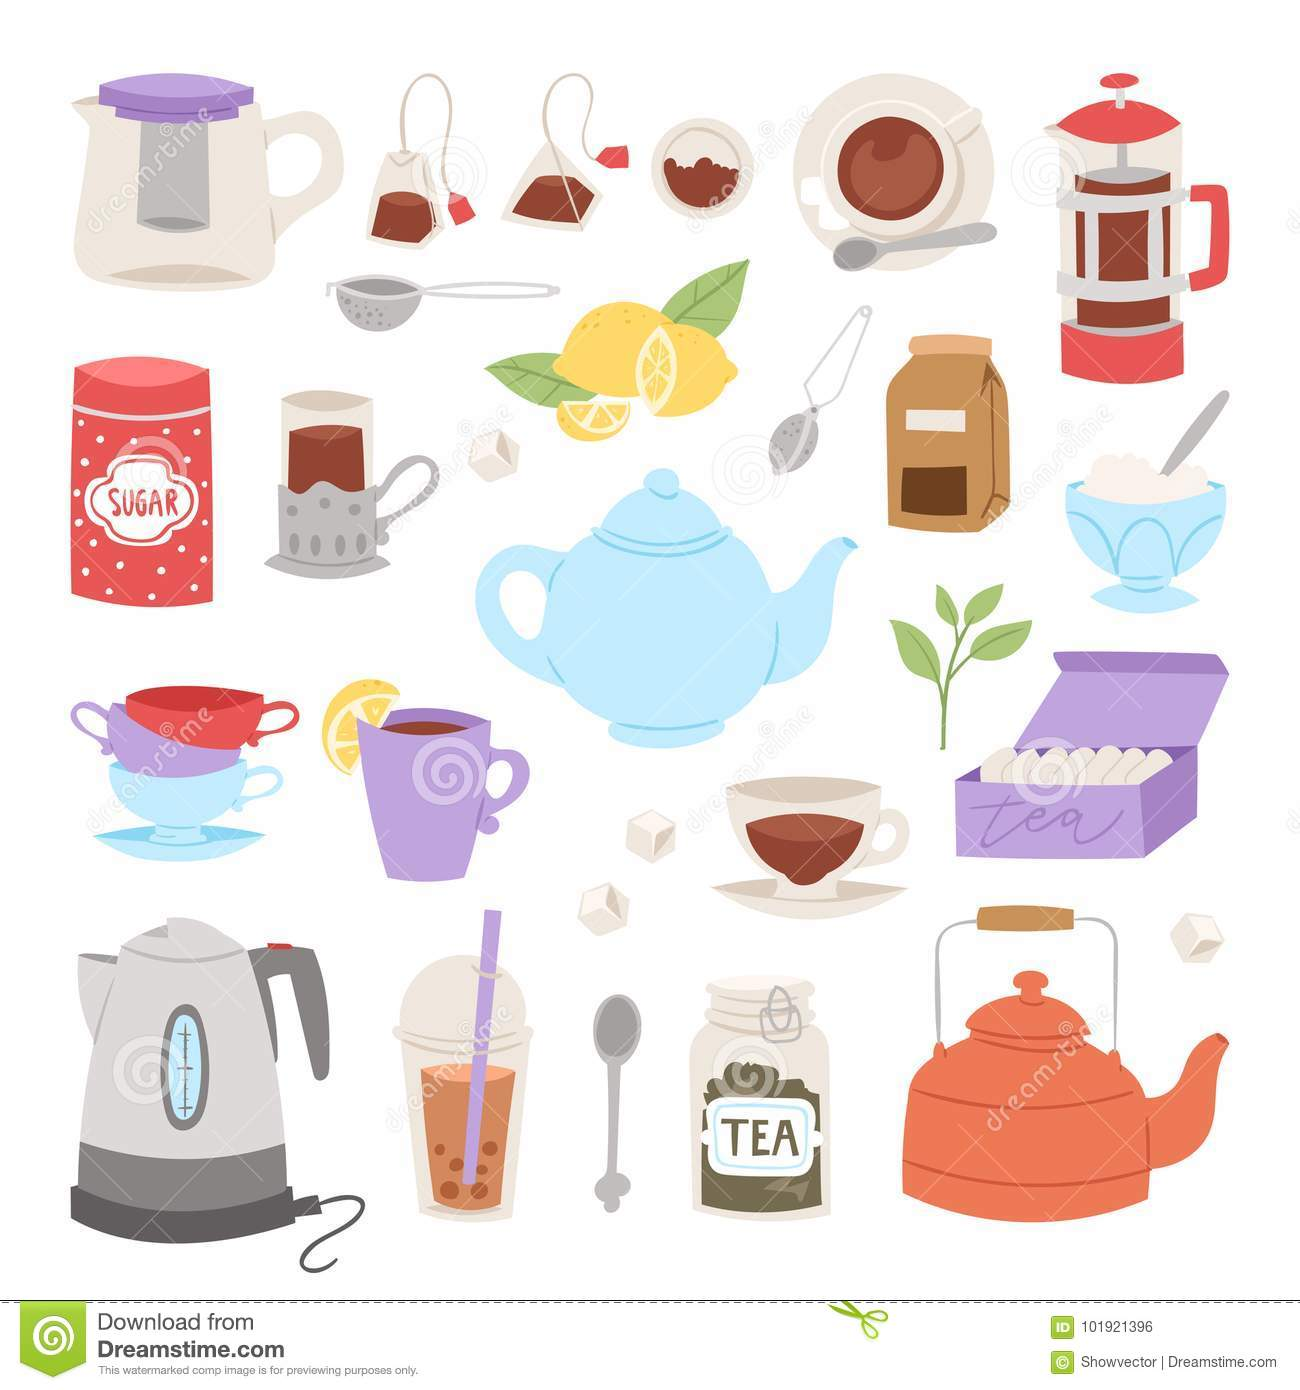 Tea time drinking procedure icons how to prepare hot drink instruction traditional teapot kettle cooking vector